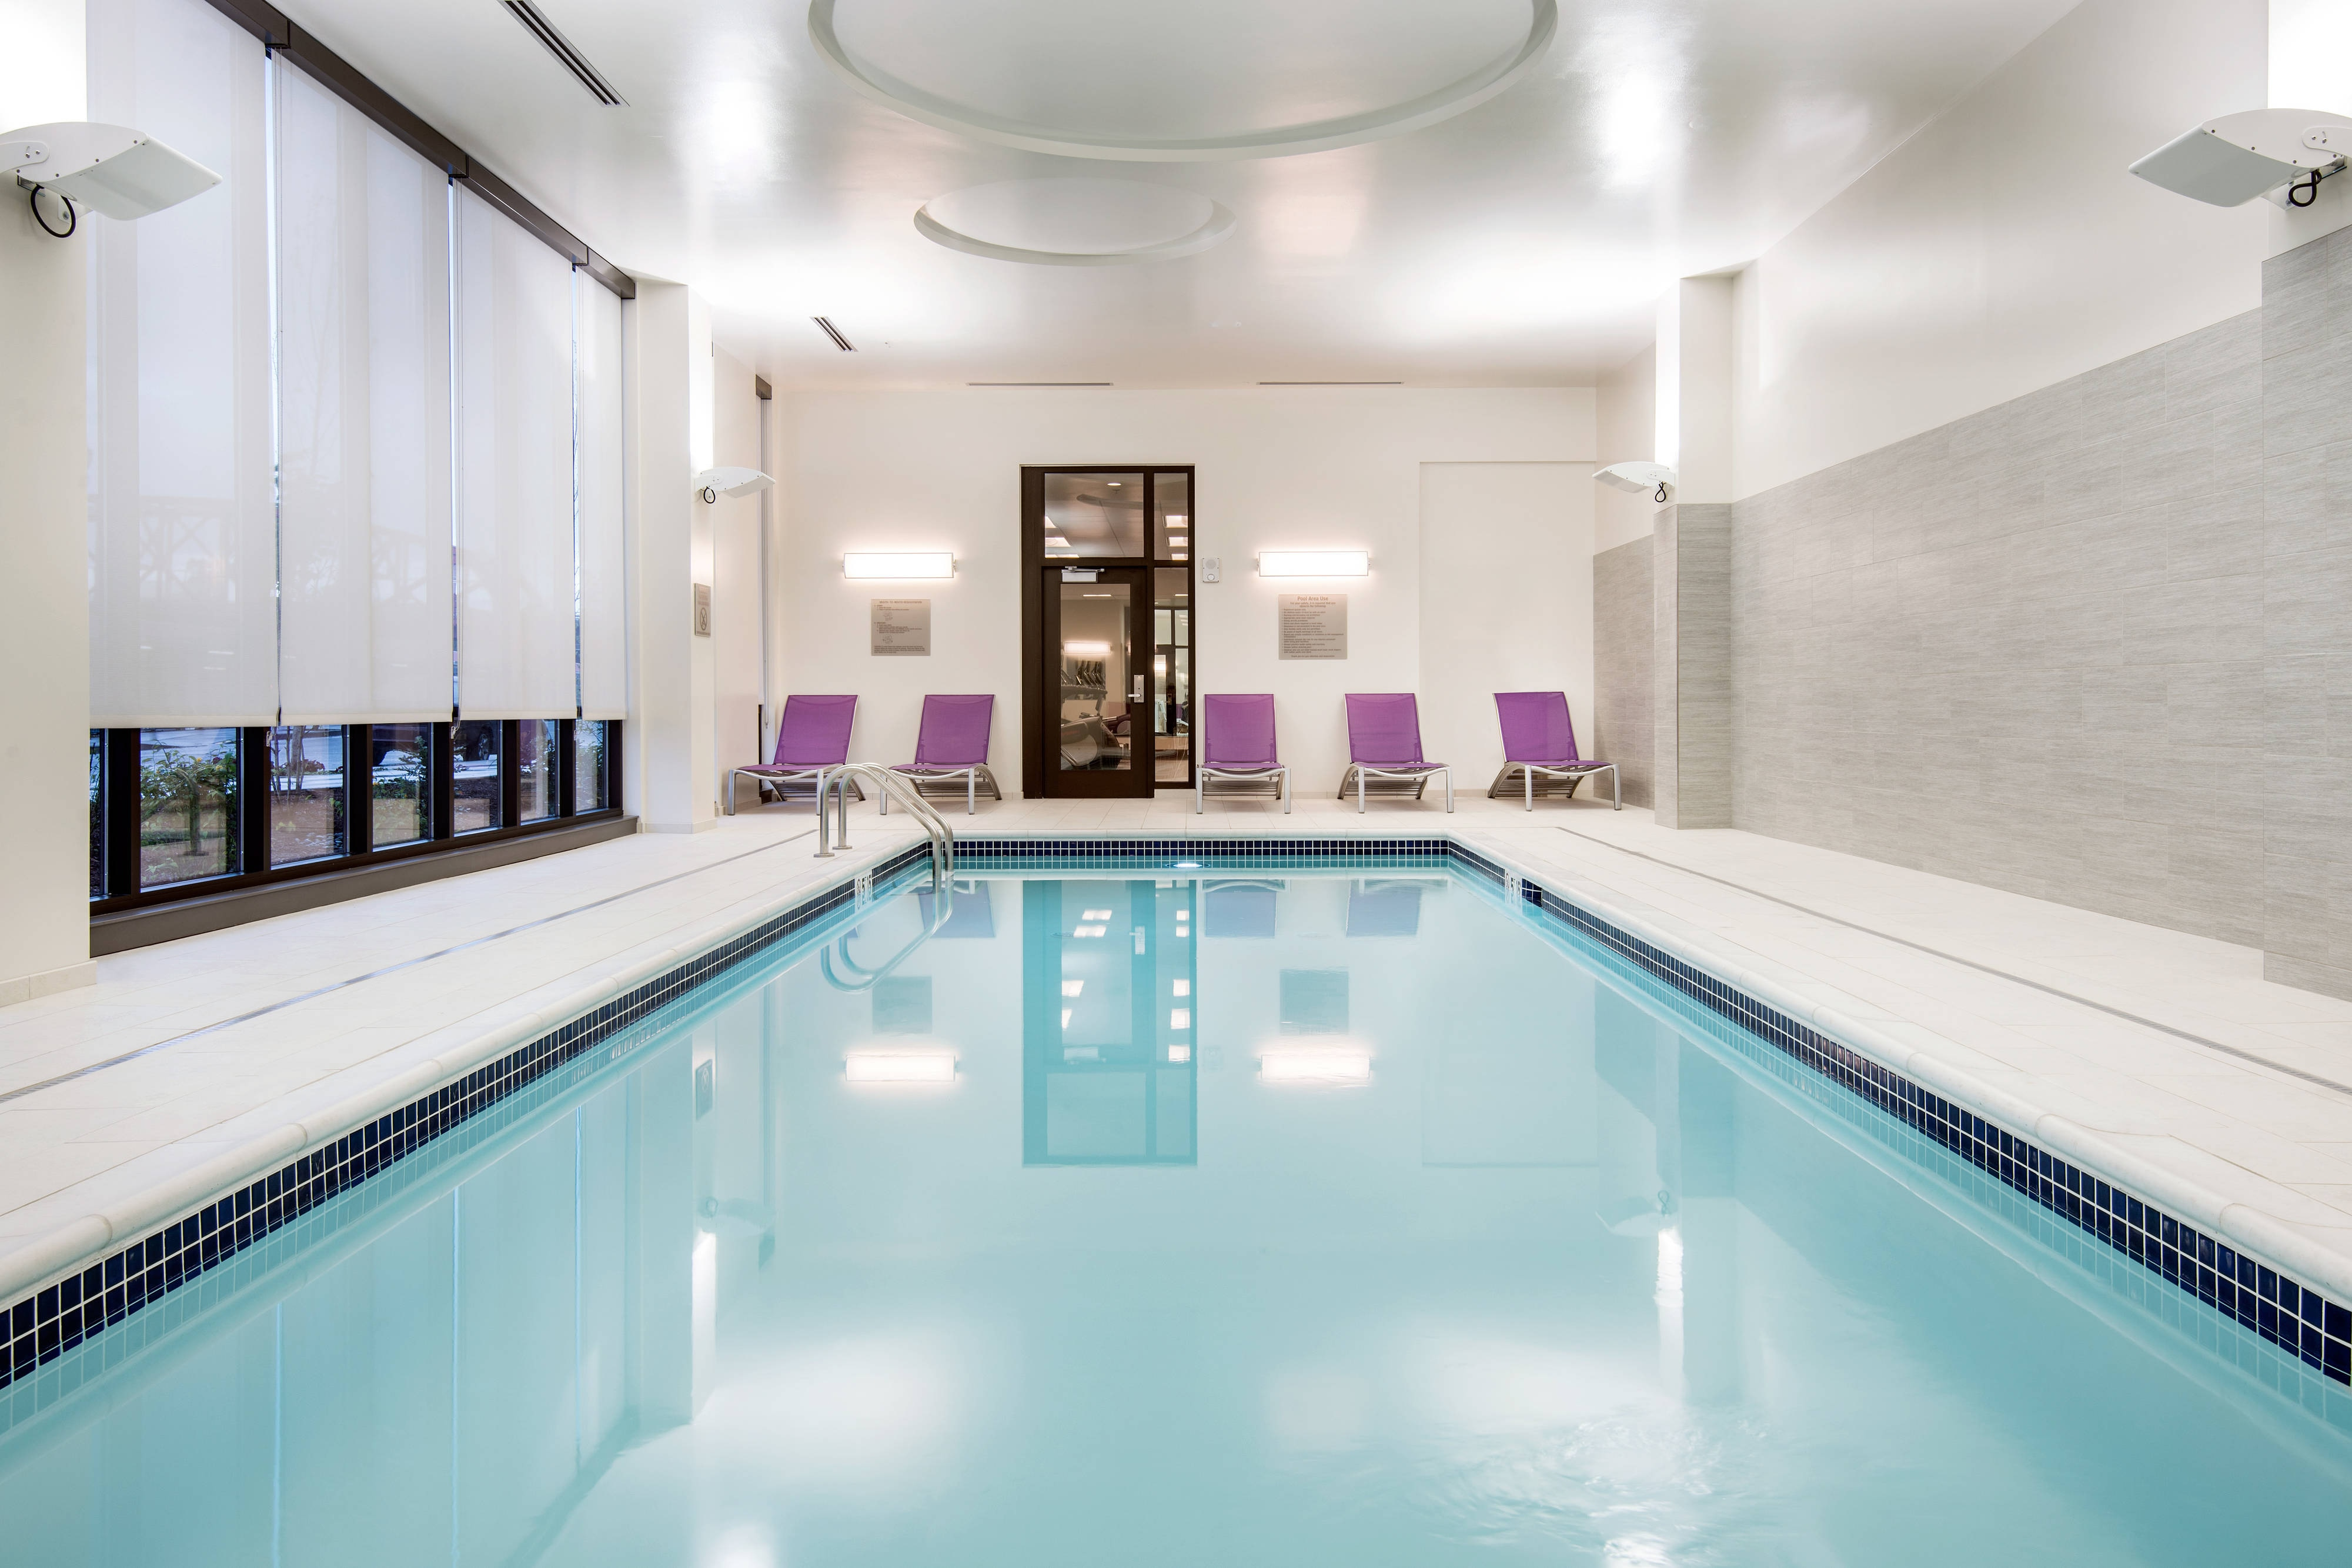 Portland hotel with indoor pool